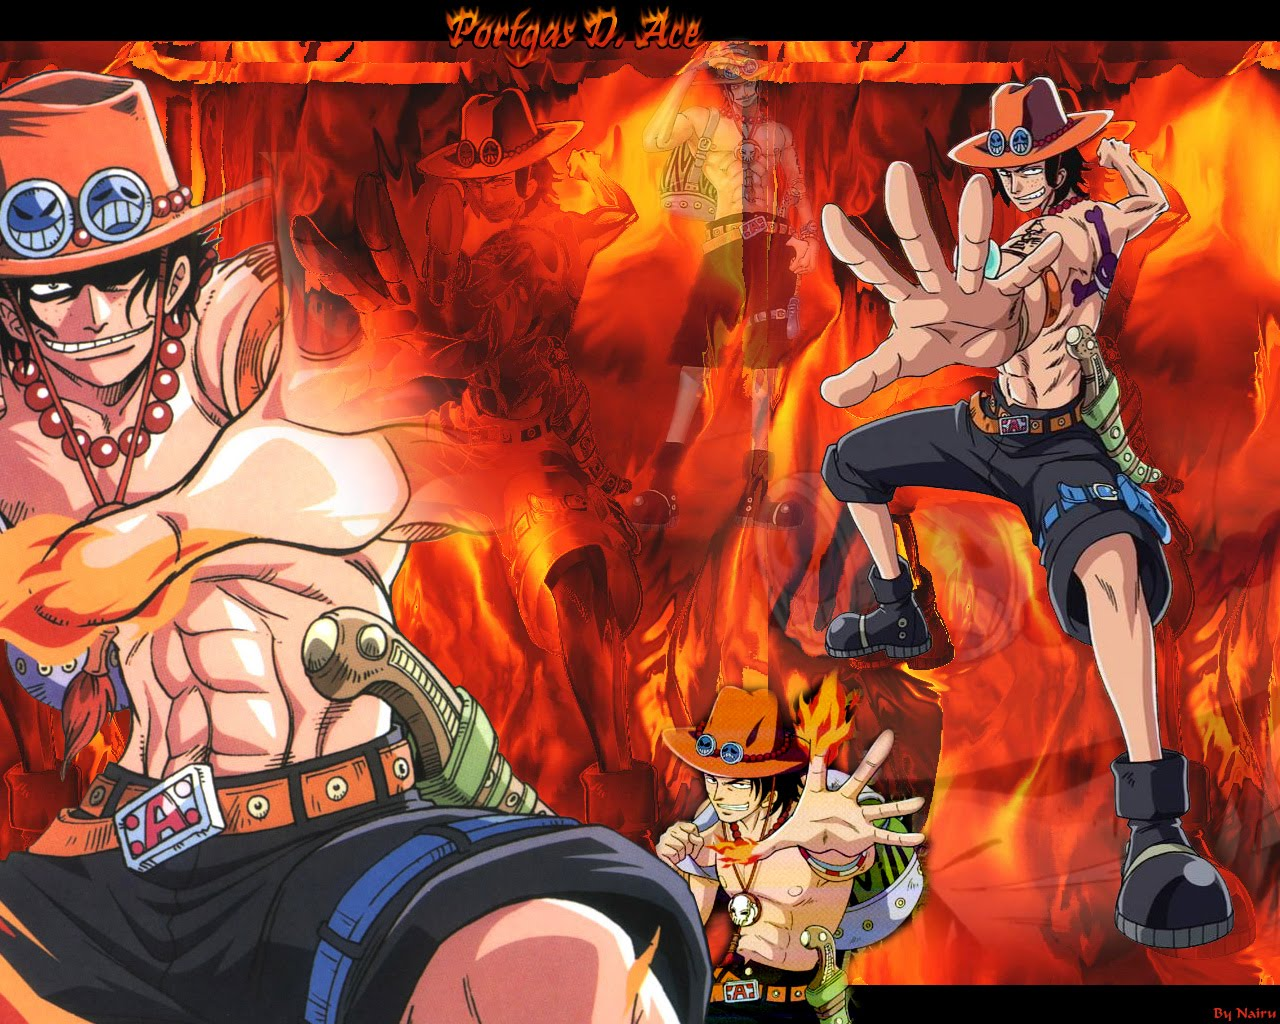 Portgas D Ace 3 One Piece Wallpaper 34540764 Fanpop